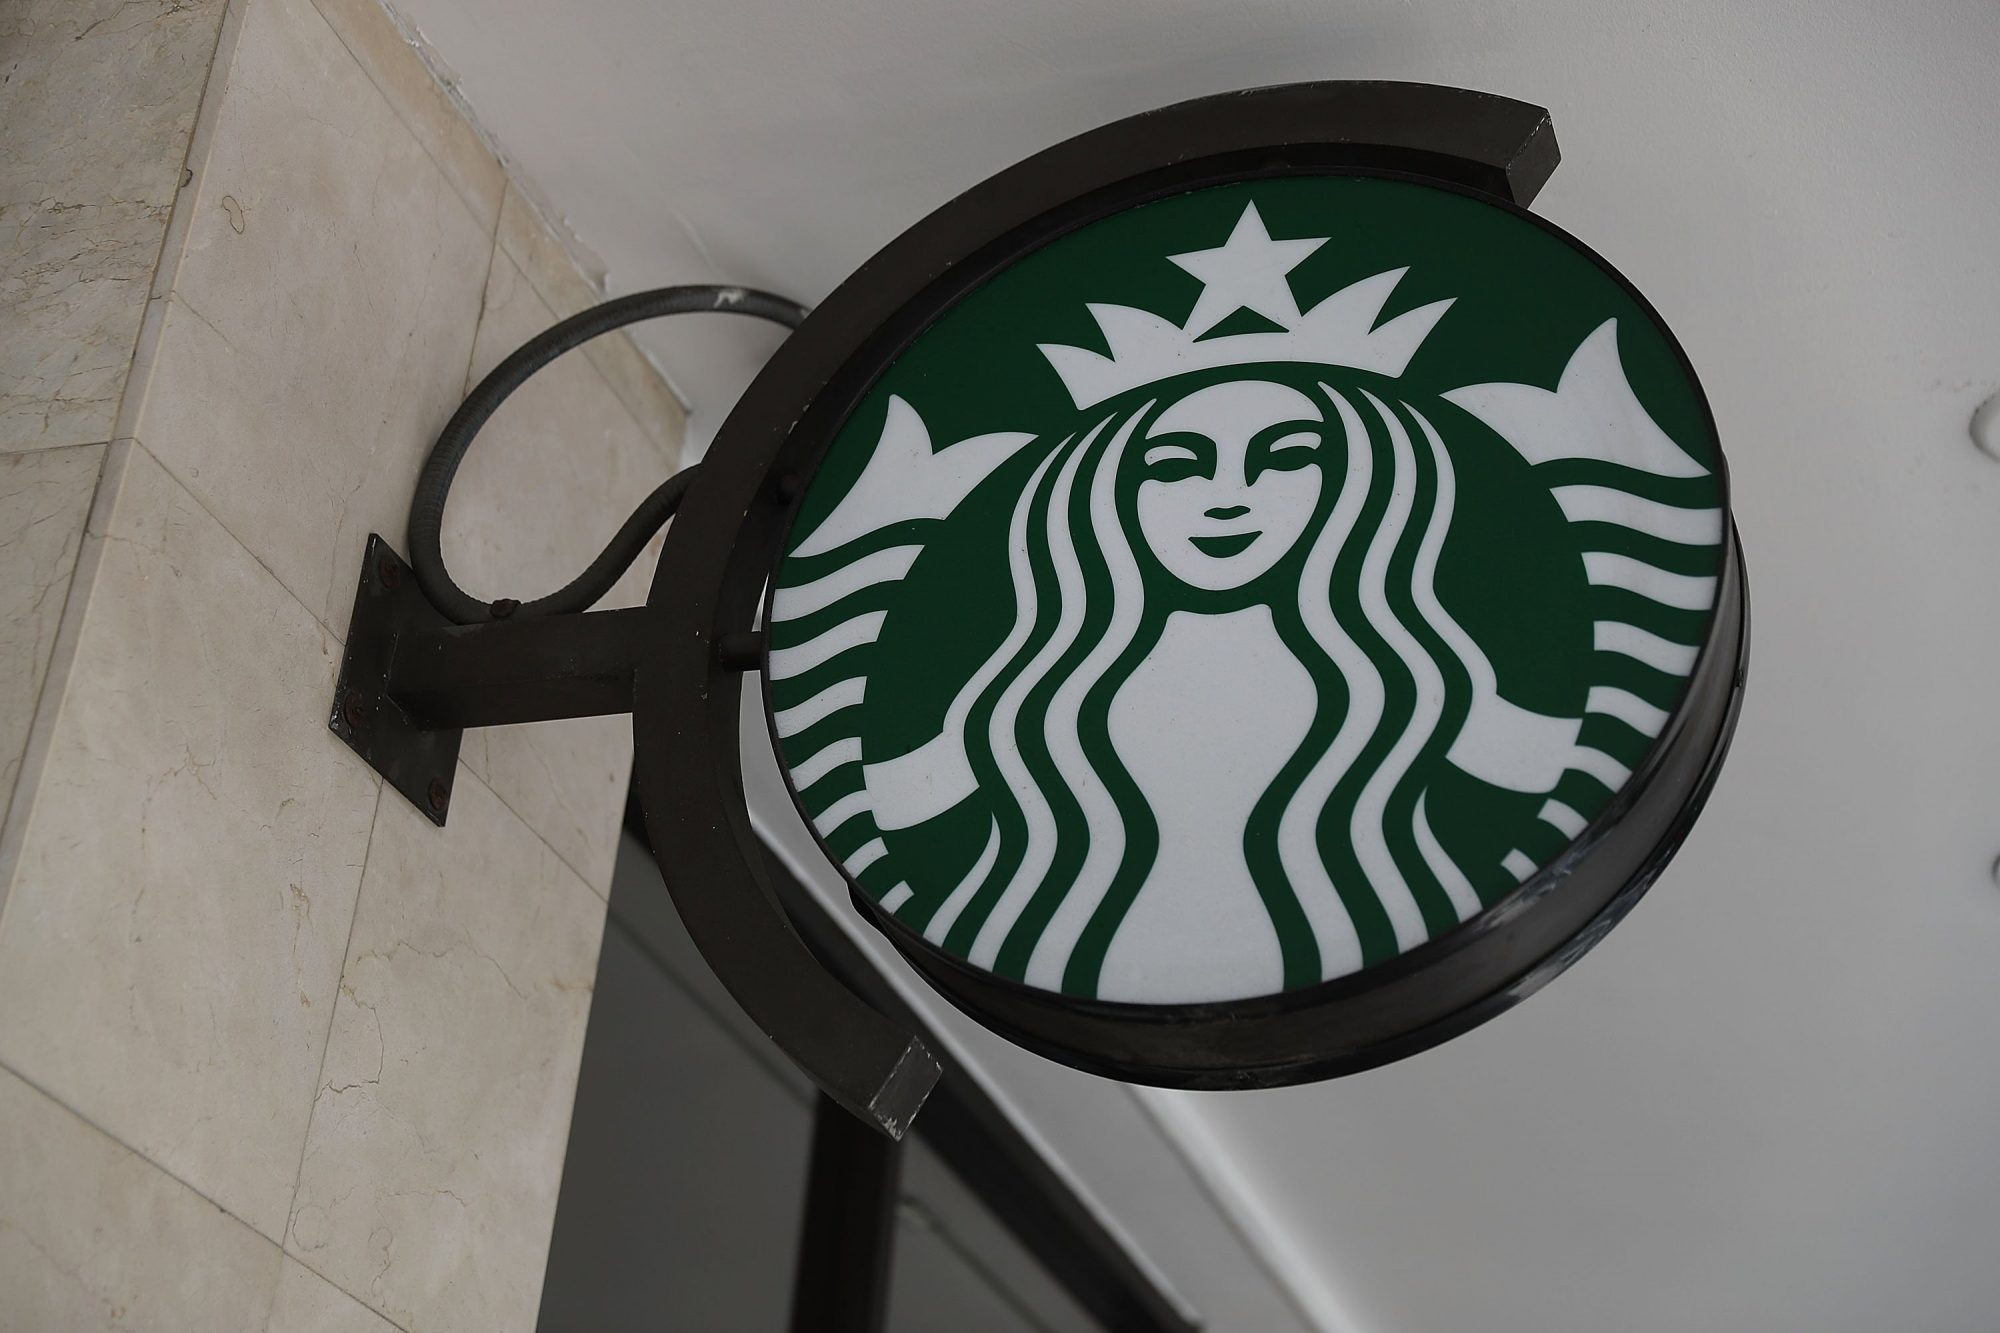 Starbucks honors veterans with camouflage cup sleeves